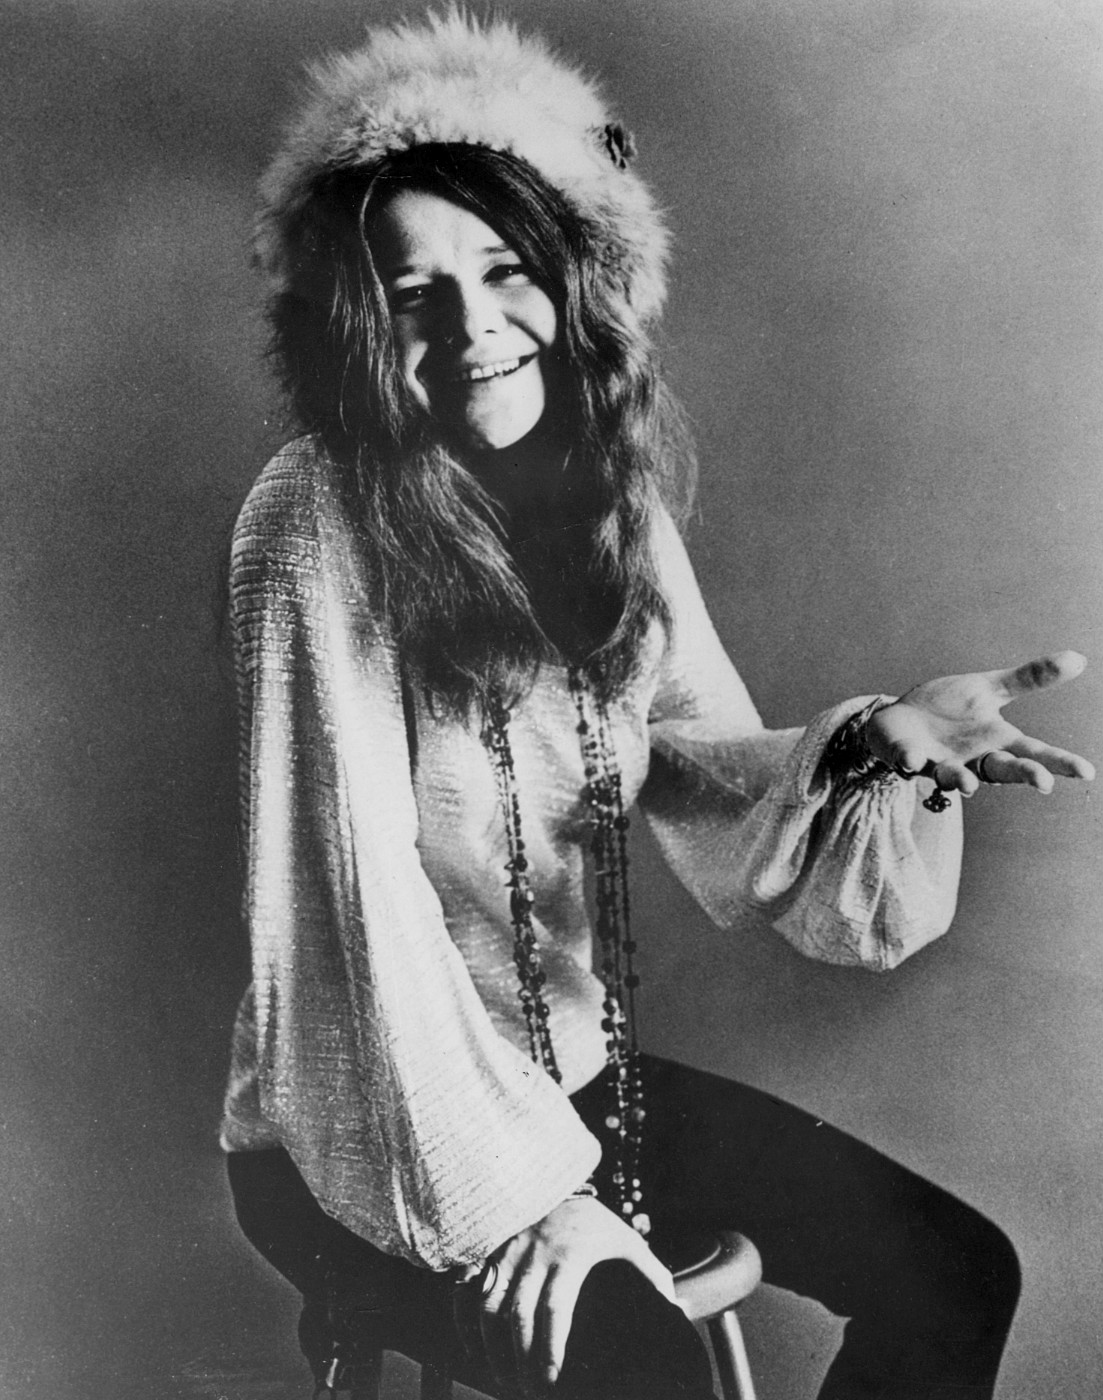 Singer and 27 Club member, Janis Joplin, seated and smiling